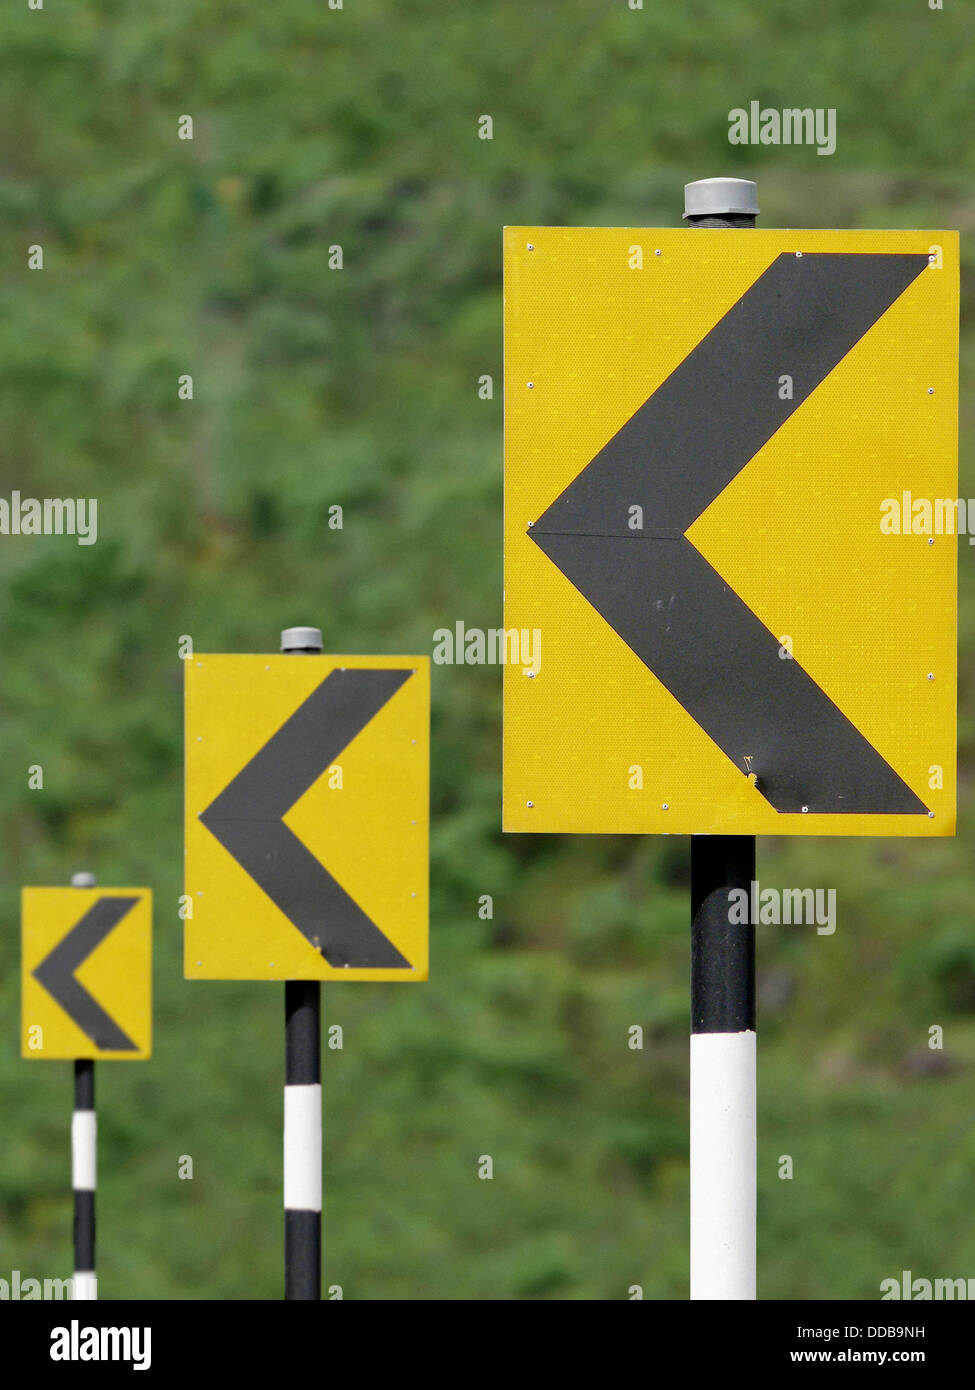 Road sign boards in sequence showing turning driving directions Katraj Bipass Highway, Pune, Maharashtra, India - Stock Image